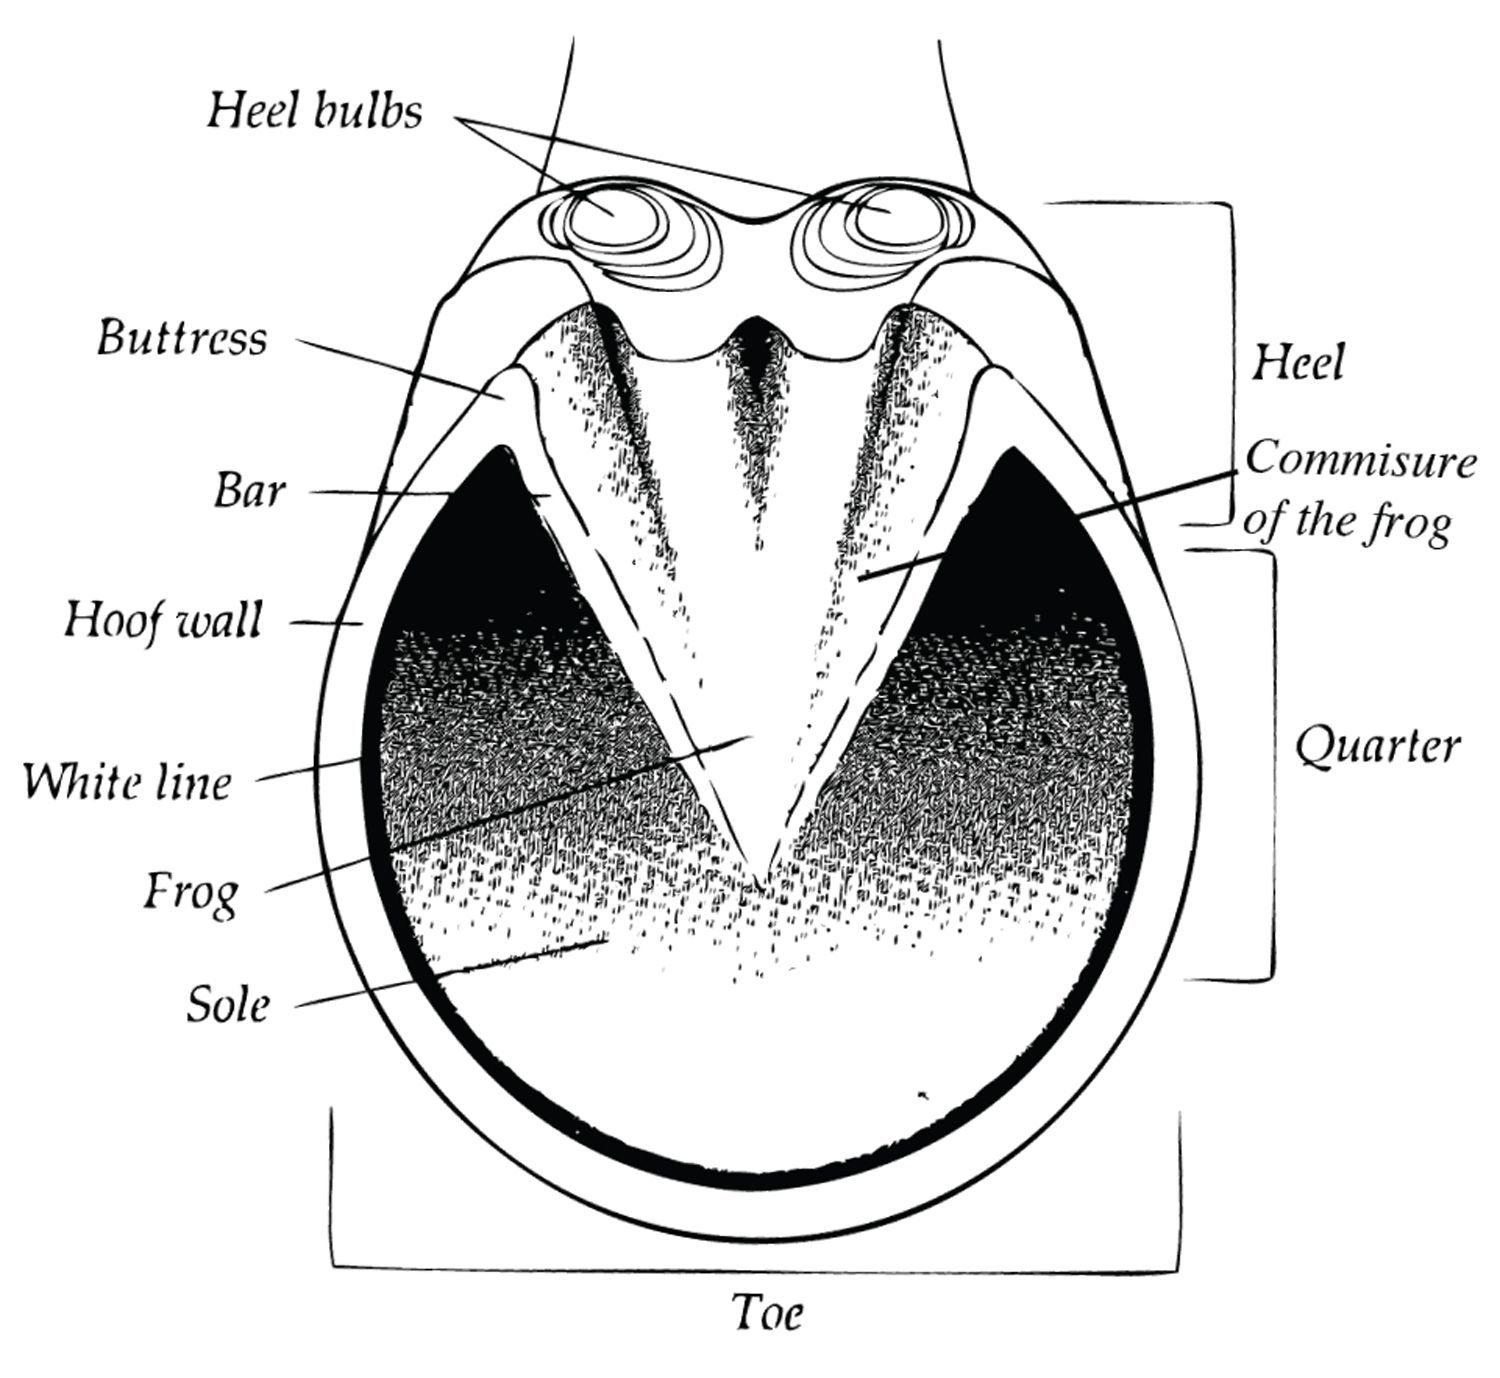 small resolution of diagram of the parts of the equine hoof showing heel bulbs diagram of horse hoof heel bulb